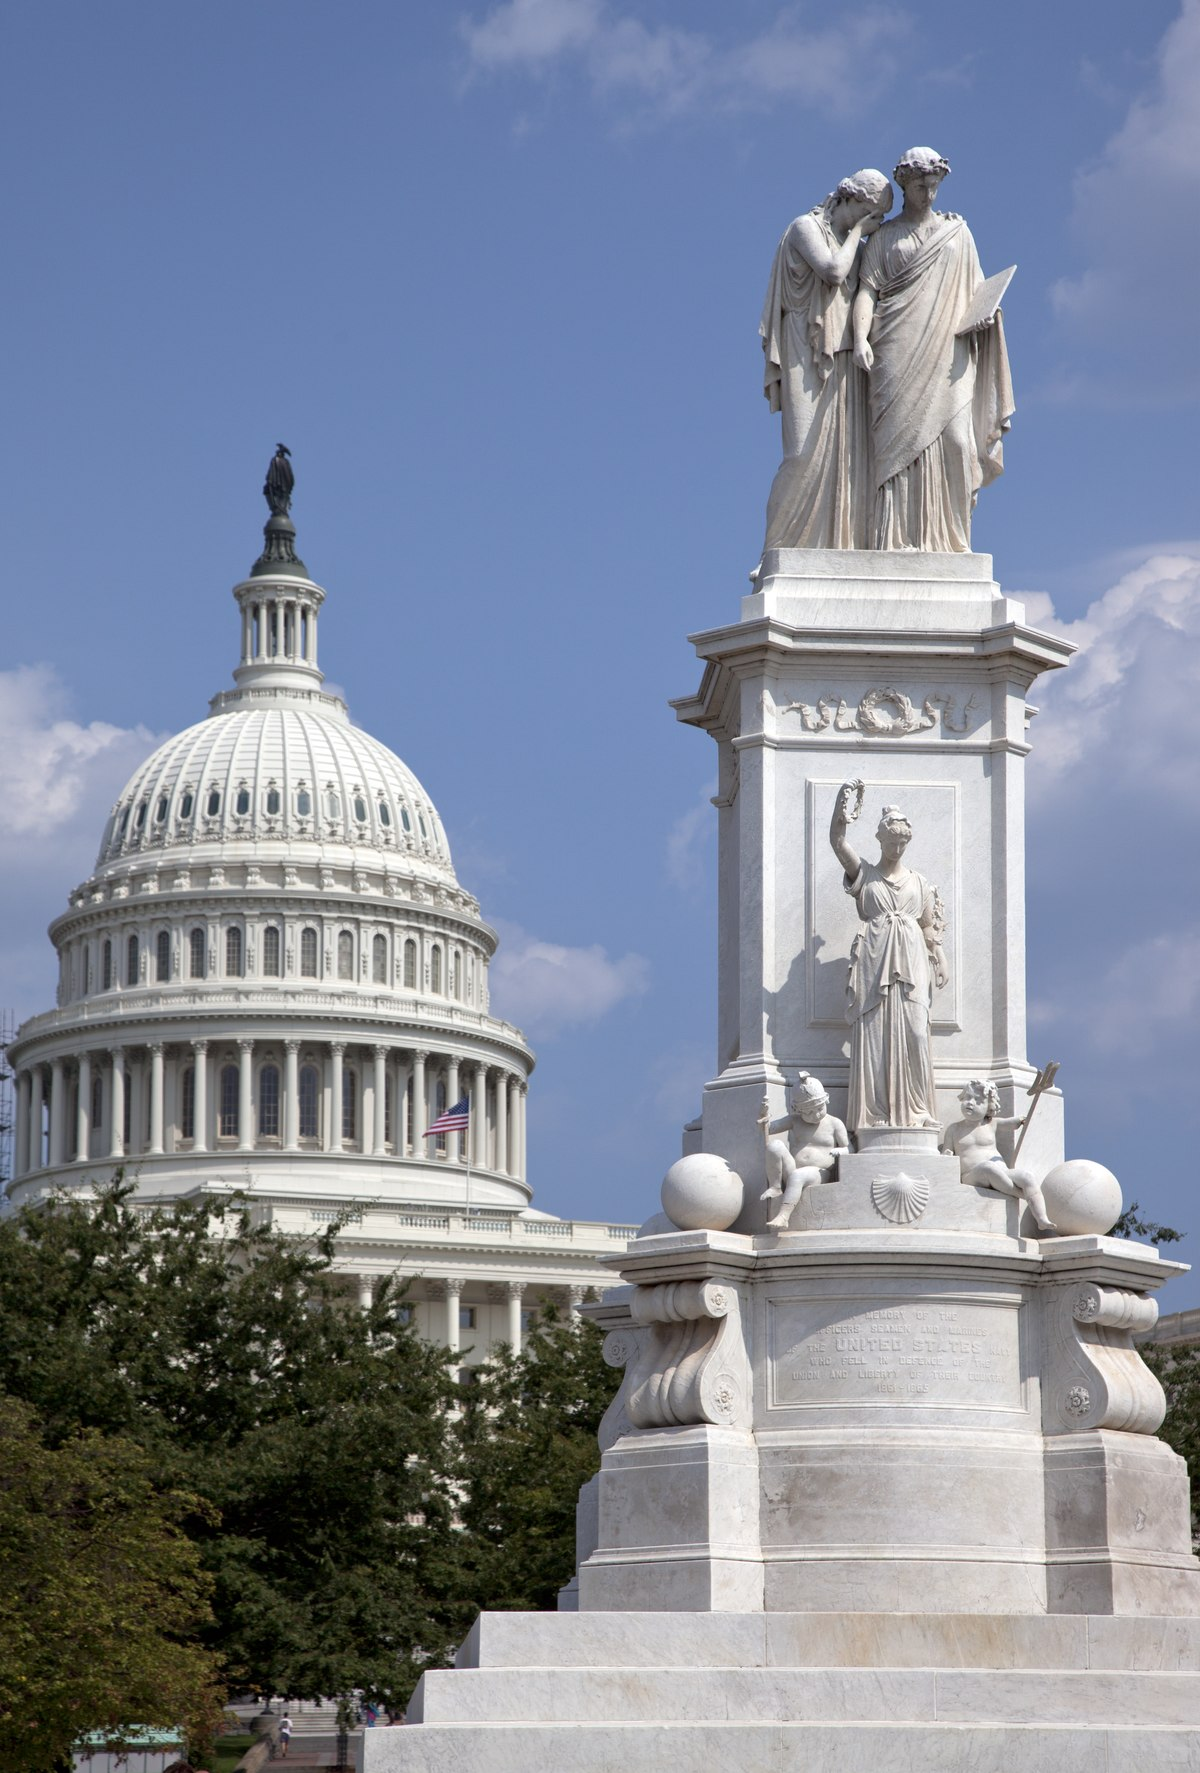 https://upload.wikimedia.org/wikipedia/commons/thumb/d/d7/The_Peace_Monument_located_in_Peace_Circle_on_the_grounds_of_the_U.S._Capitol%2C_First_St._and_Pennsylvania_Ave.%2C_Washington%2C_D.C_LCCN2010641995.tif/lossy-page1-1200px-The_Peace_Monument_located_in_Peace_Circle_on_the_grounds_of_the_U.S._Capitol%2C_First_St._and_Pennsylvania_Ave.%2C_Washington%2C_D.C_LCCN2010641995.tif.jpg